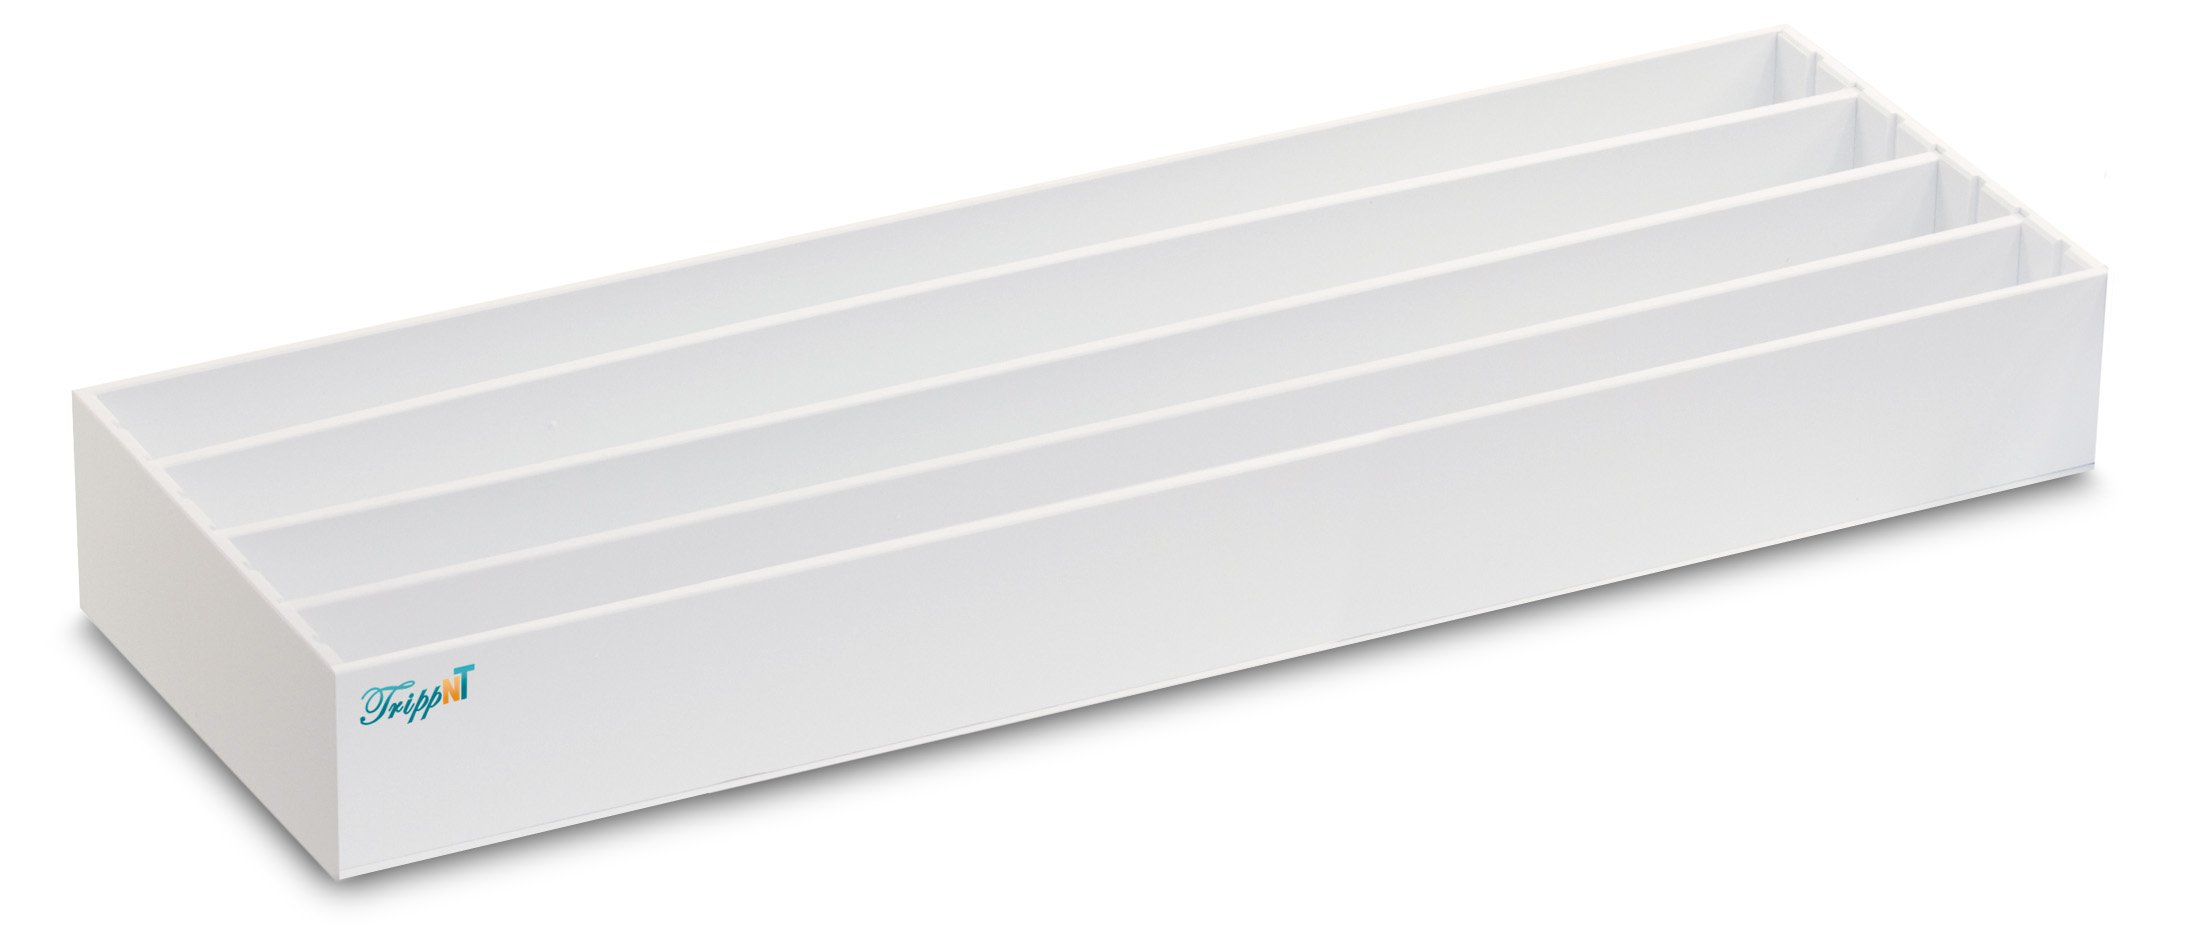 TrippNT 50492 Small Pipette Storage Box with Adjustable Compartments, 25'' Width x 3'' Height x 8'' Depth